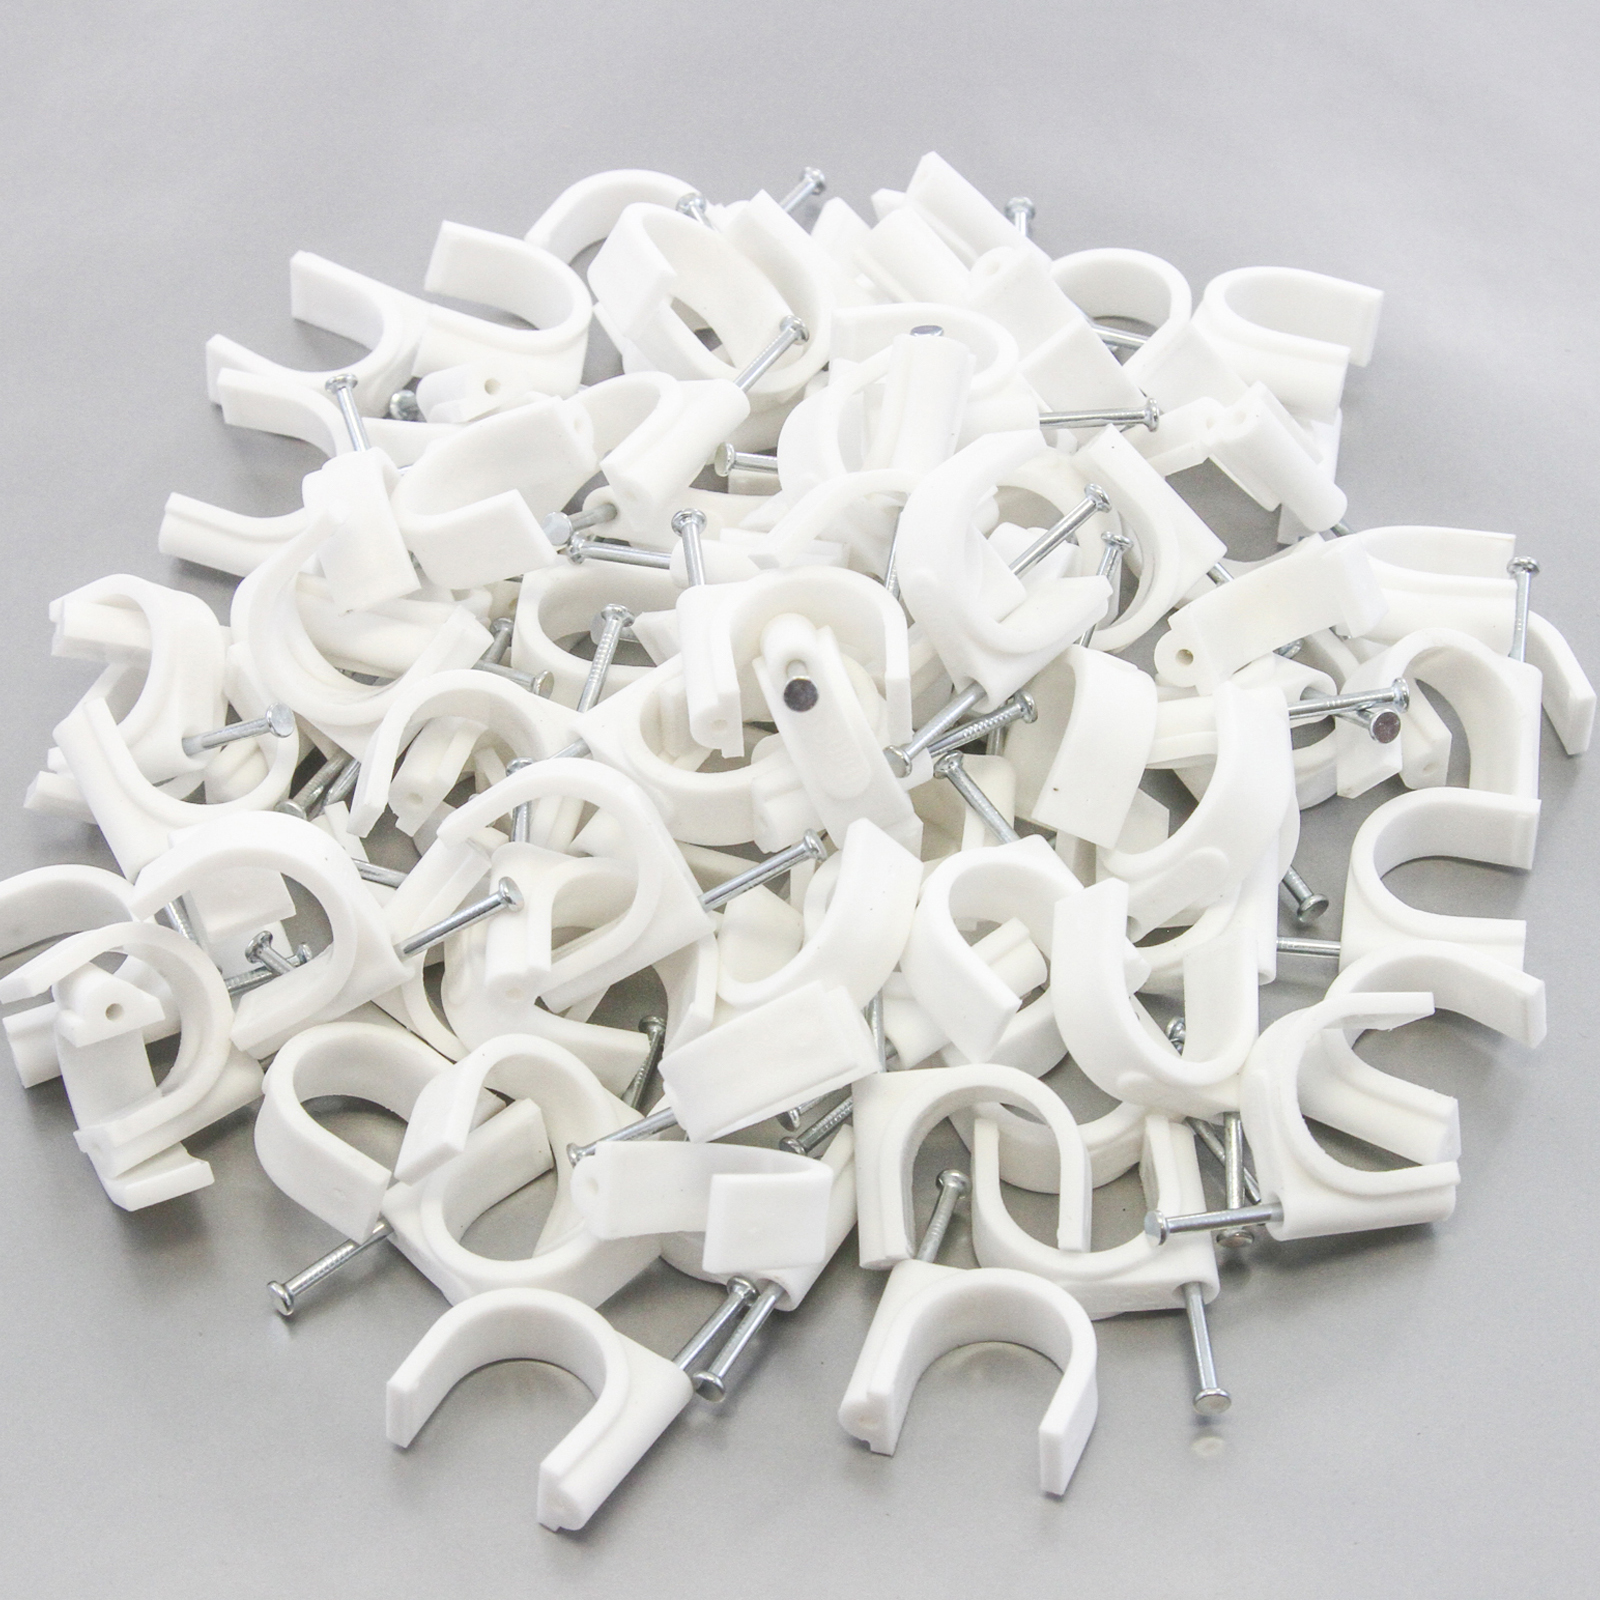 "100 Round 1"" (25 mm) Cable Wire Clips Cable Management Cord Tie Holder Coaxial Nail In Clamps Tacks"